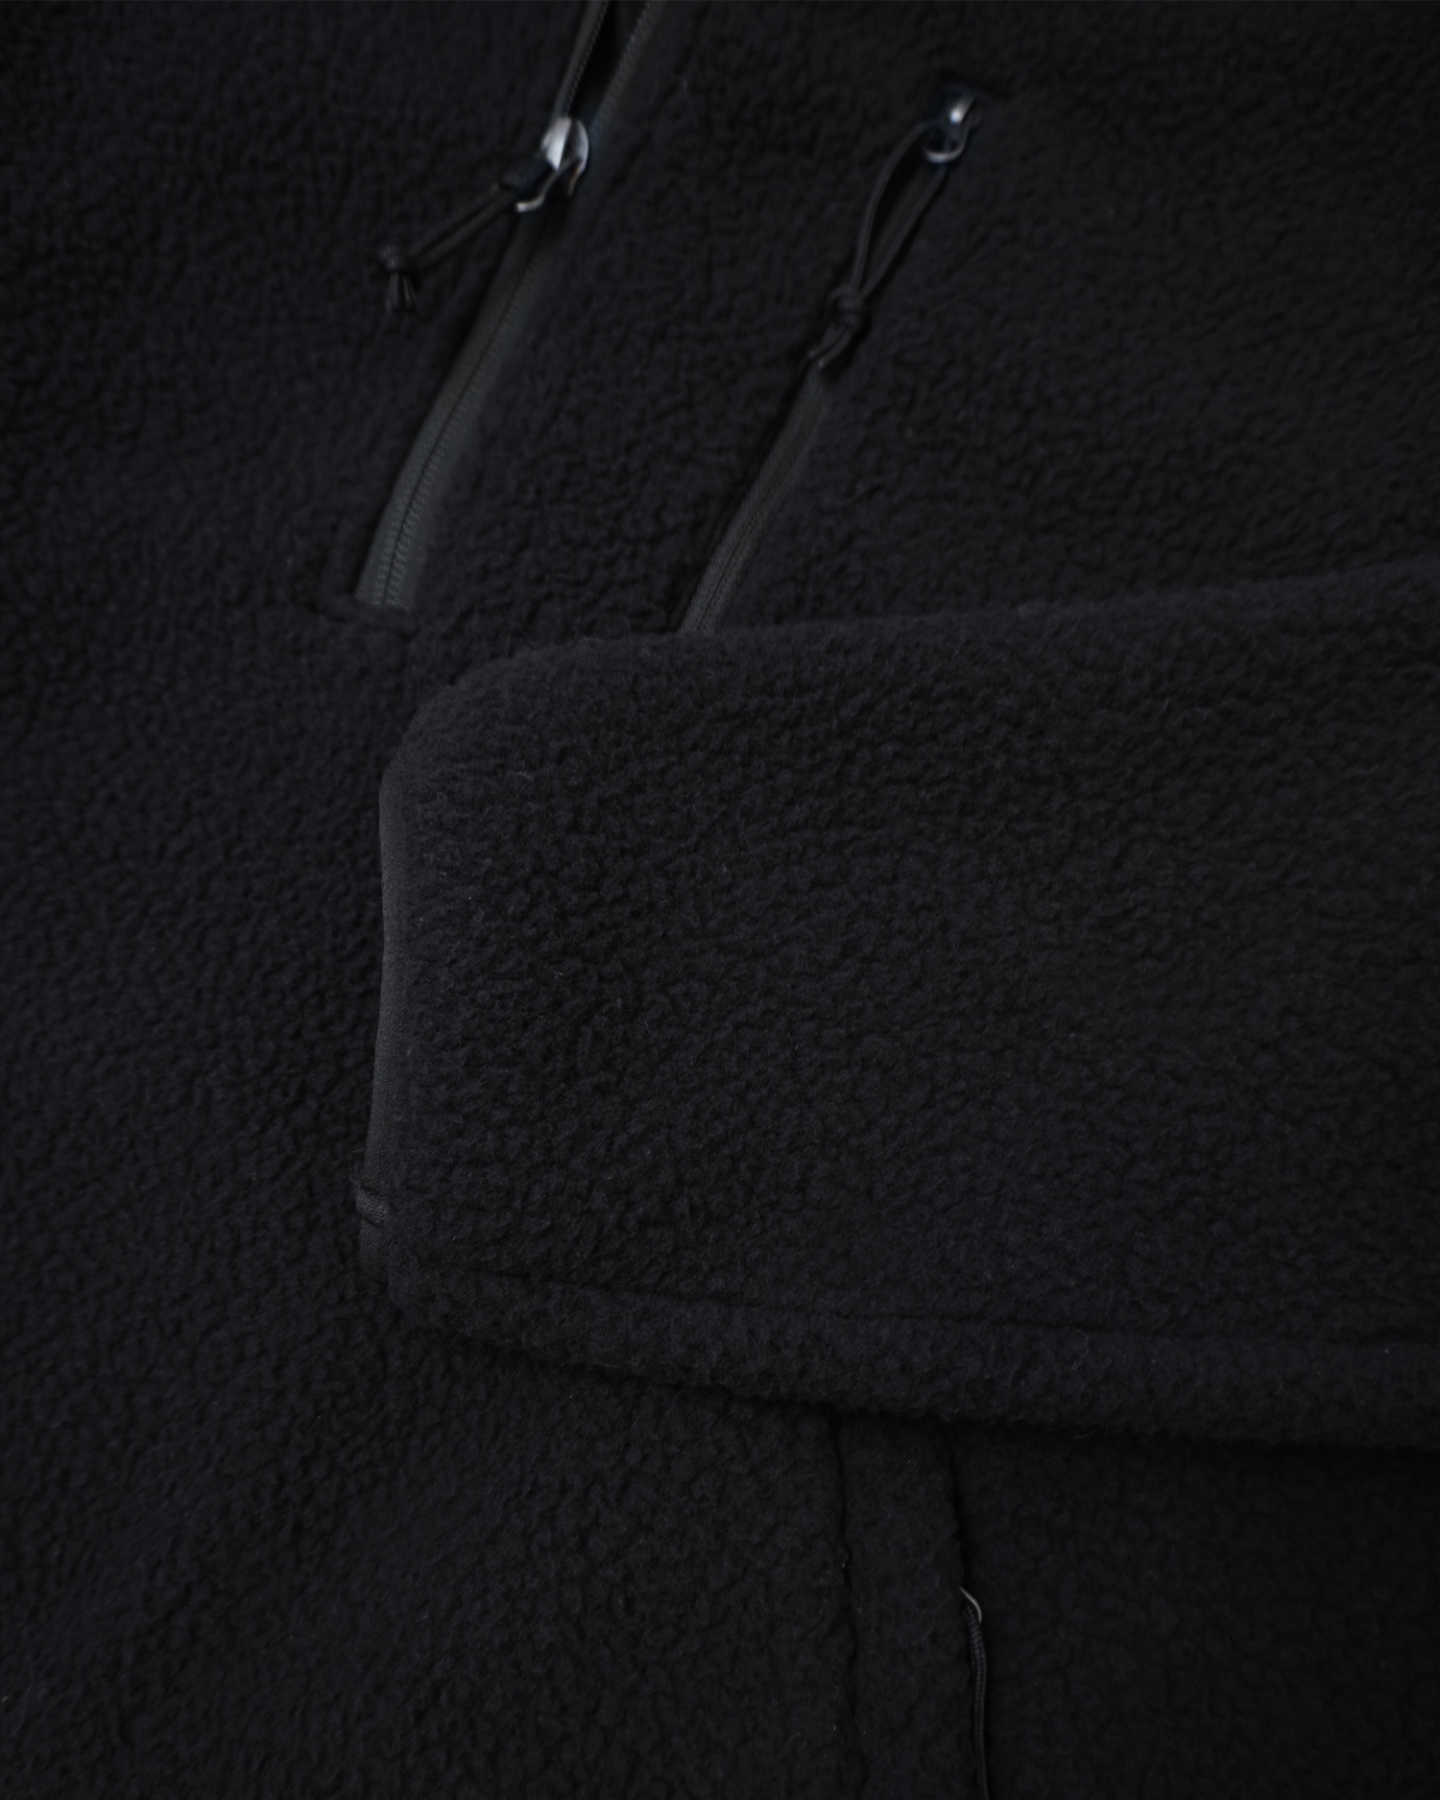 Recycled Sherpa Fleece Pullover Jacket - Black - 6